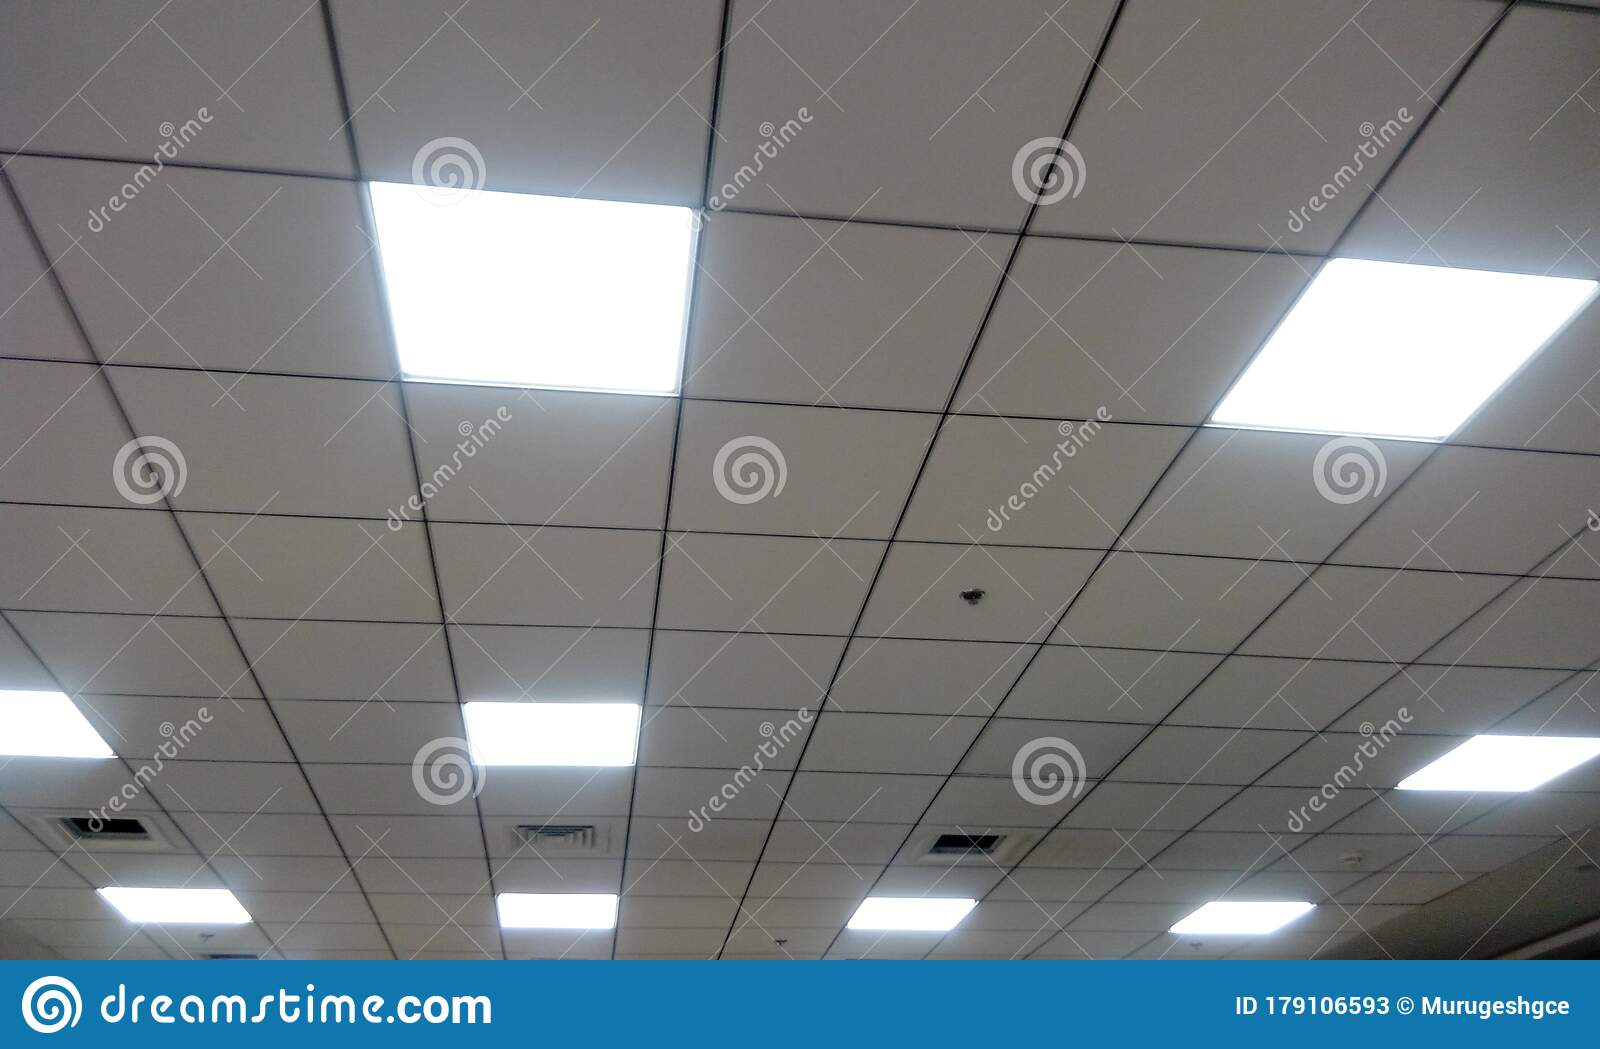 Suspended Grid False Ceiling For An Workstation Office Commercial Building Stock Image Image Of Flat Light 179106593